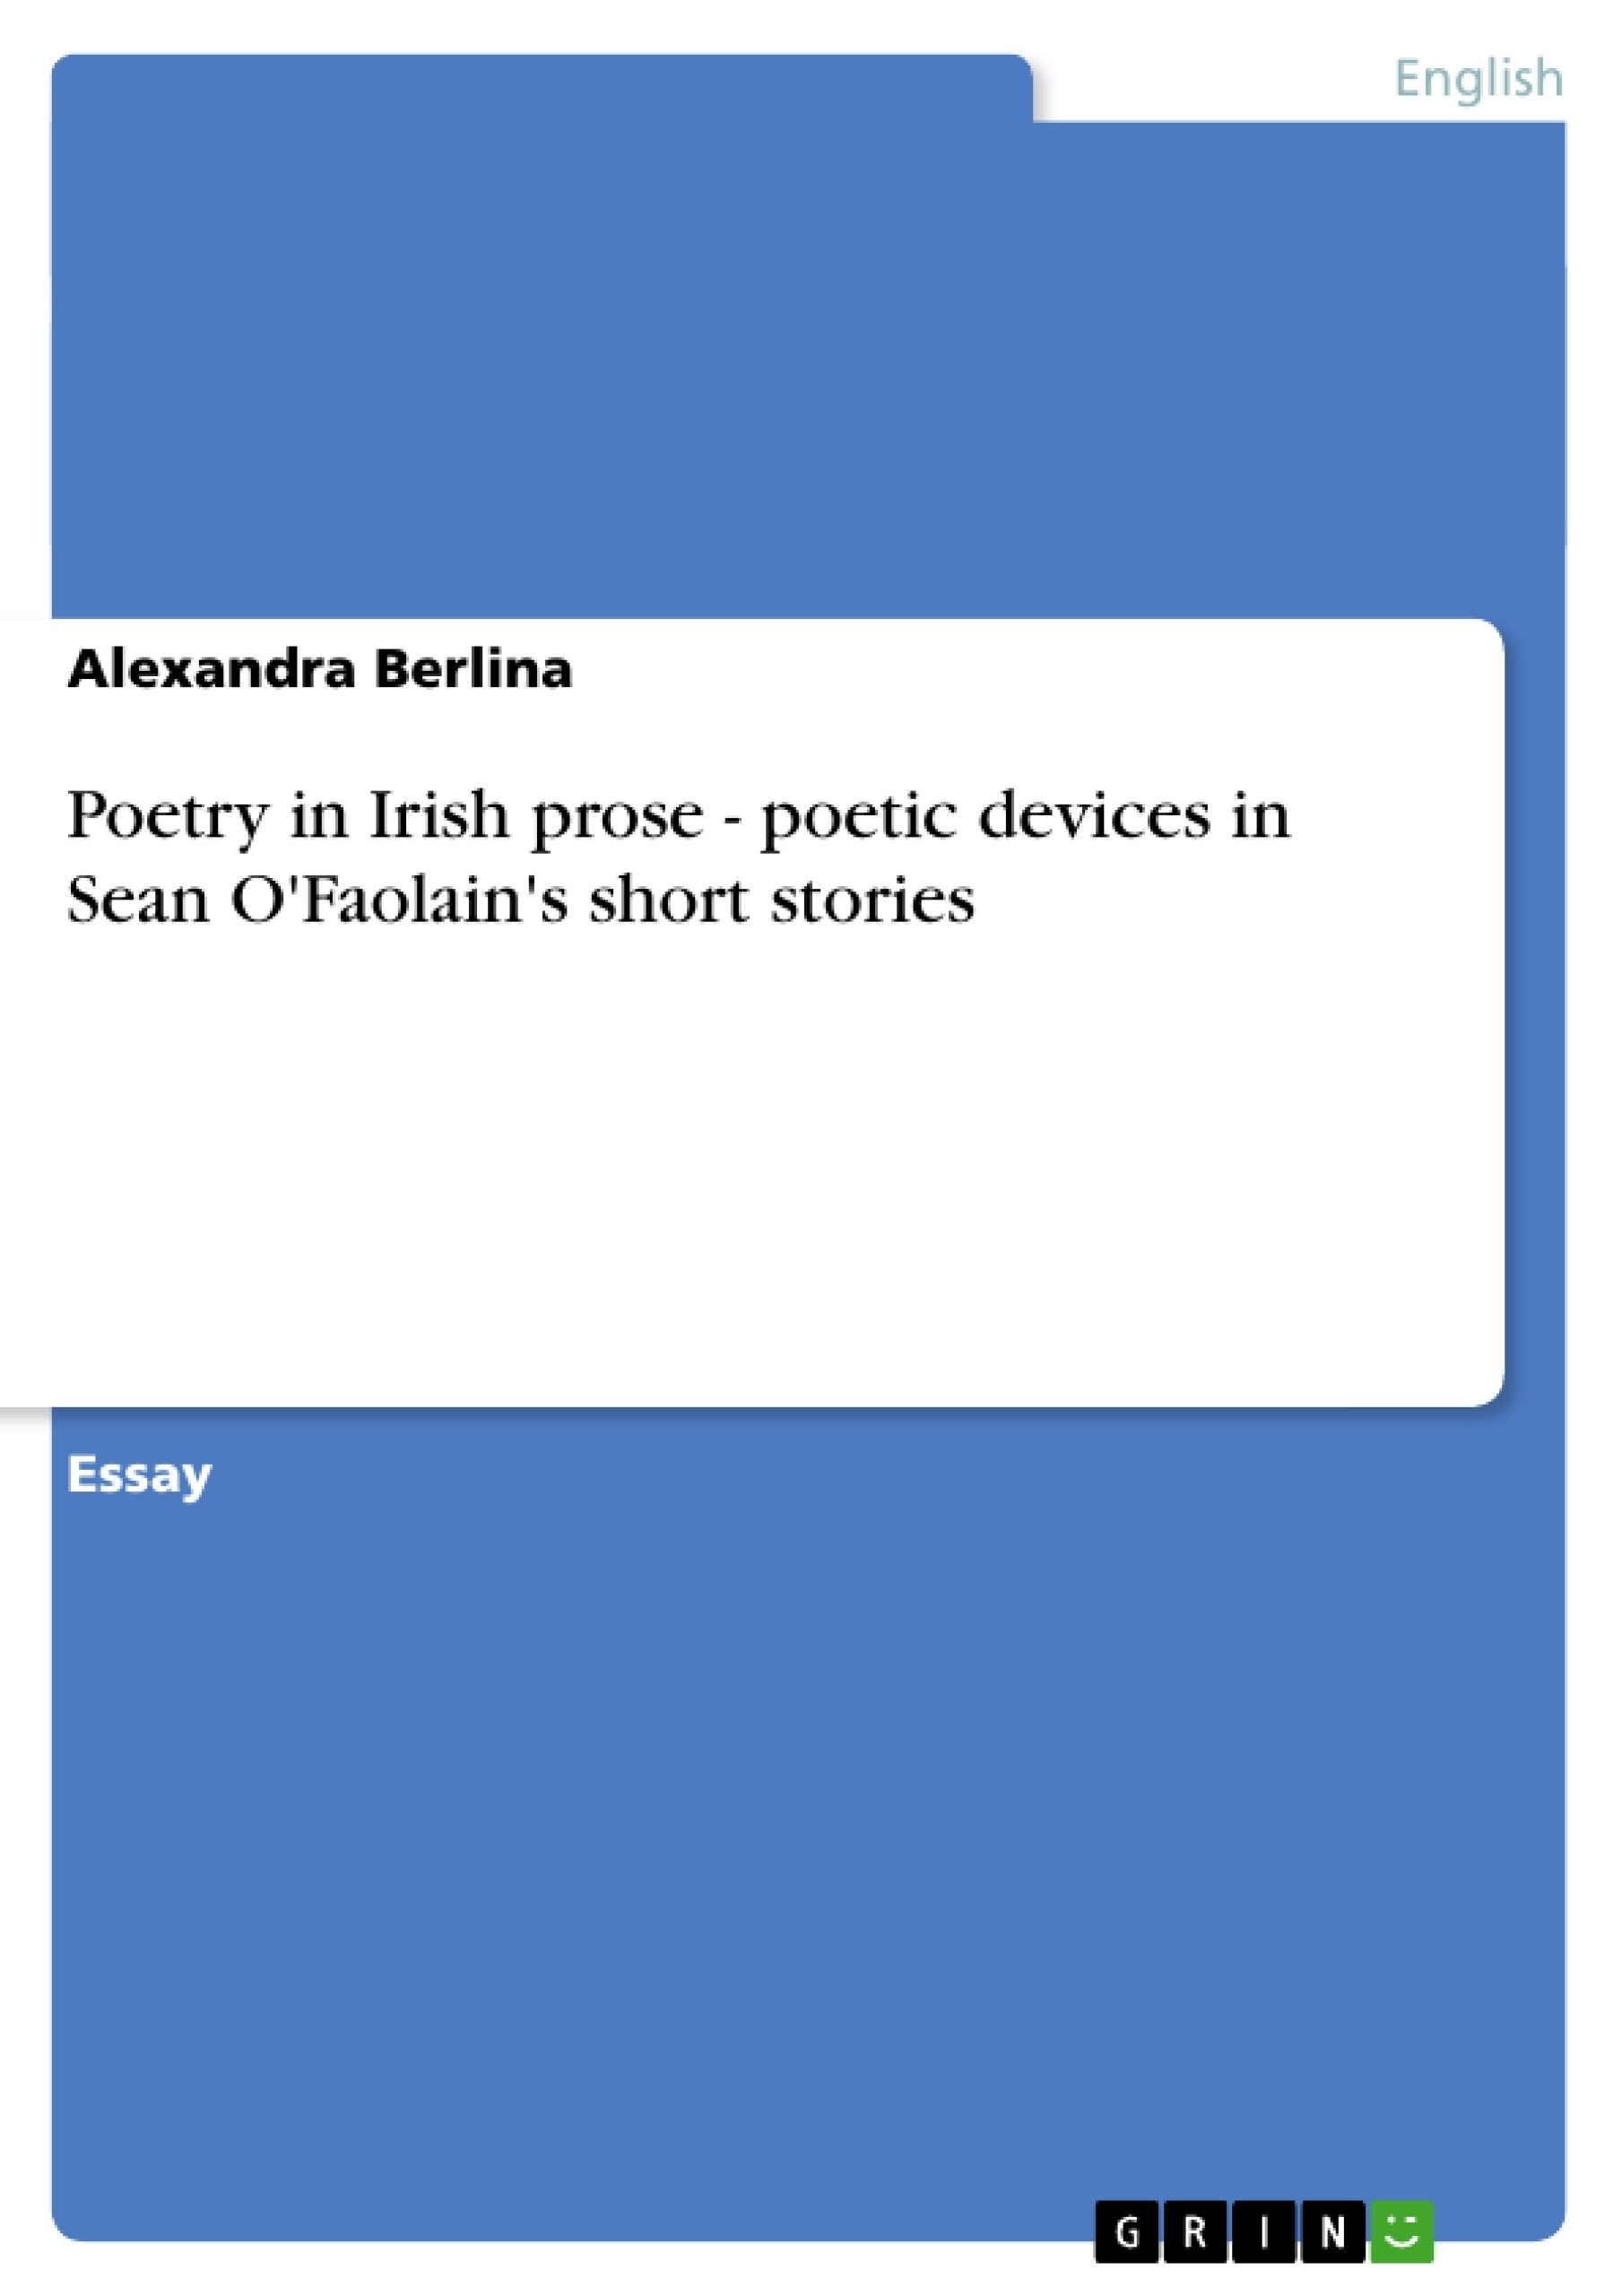 Title: Poetry in Irish prose - poetic devices in Sean O'Faolain's short stories